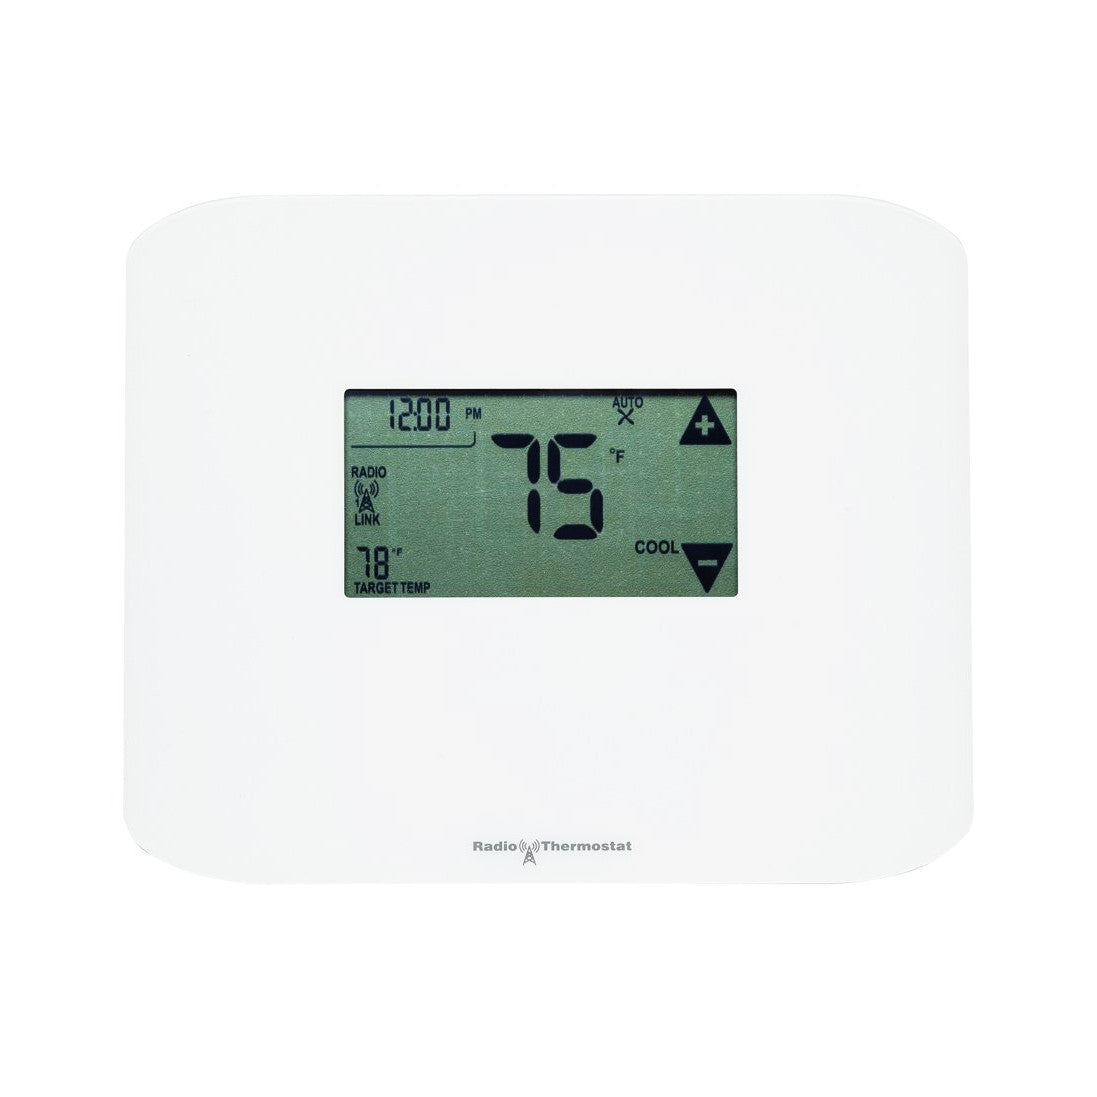 radio thermostat z wave plus communicating touchscreen thermostat ct10 the smartest house. Black Bedroom Furniture Sets. Home Design Ideas